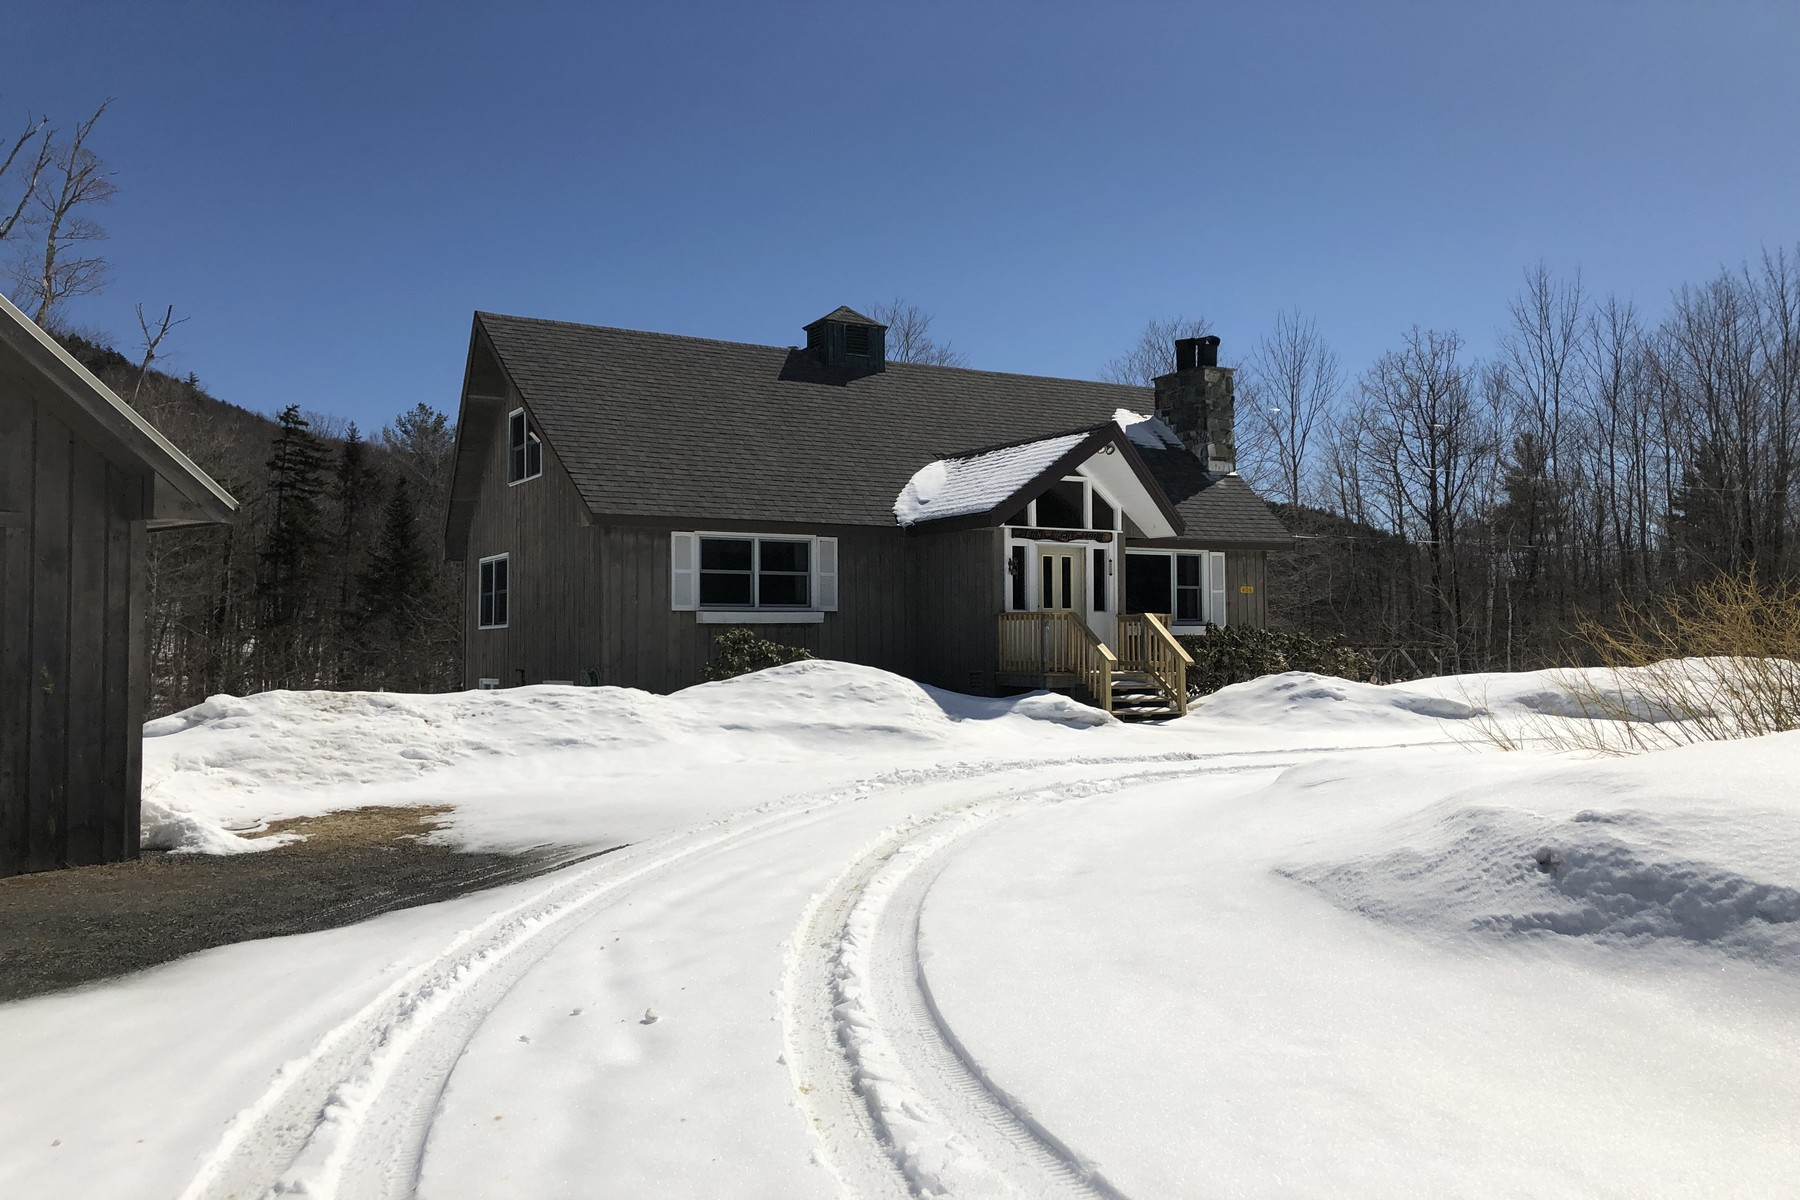 single family homes for Sale at 406 Woodburn Rd, Windham 406 Woodburn Rd Windham, Vermont 05359 United States